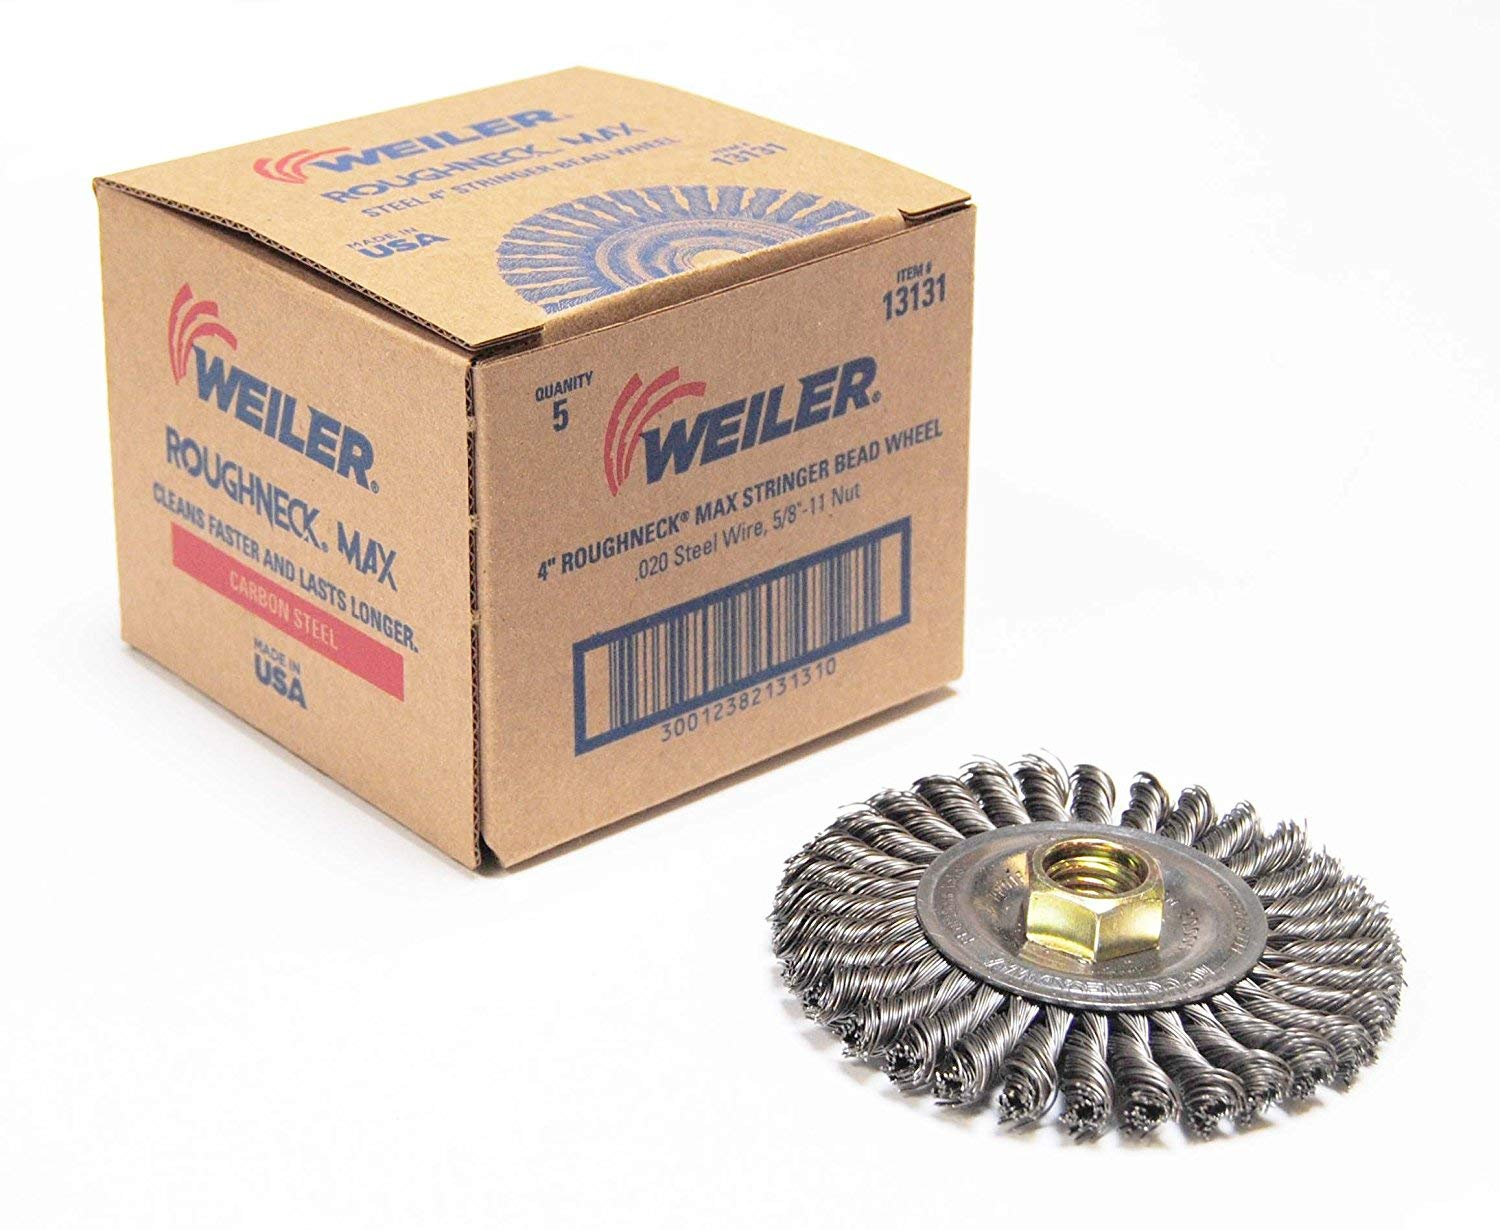 Weiler 13138 ROUGHNECK MAX 4'' Stringer Bead Wire Wheel.020'' Stainless Steel Fill, 5/8''-11 UNC Nut, Made in USA, Pack of 5